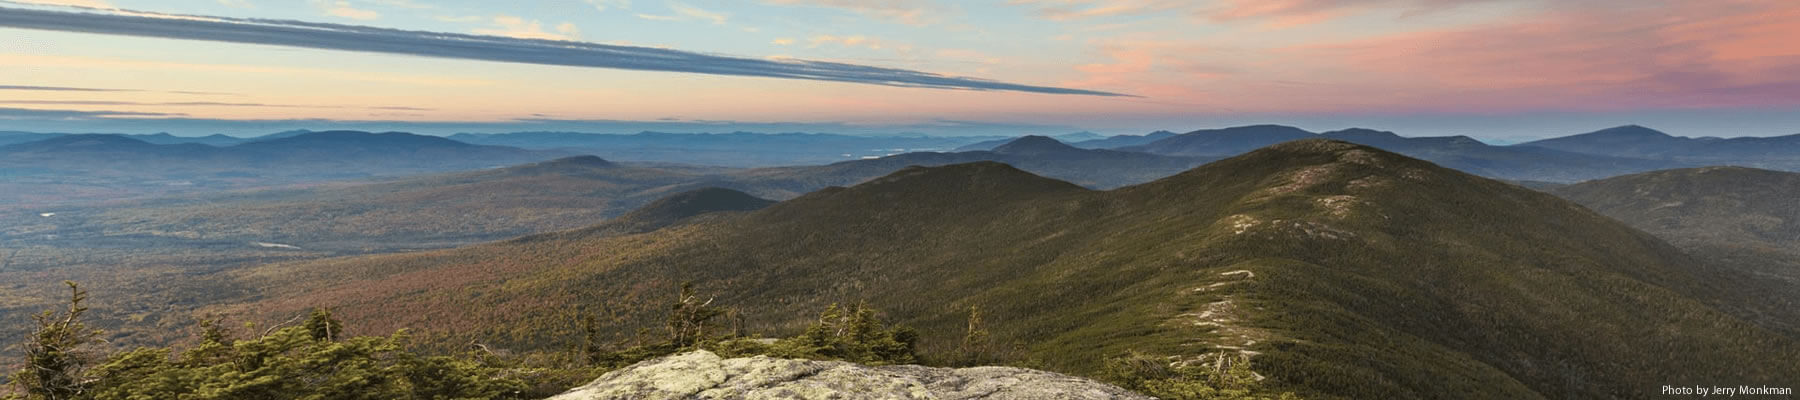 Maine's mountain region at dawn.